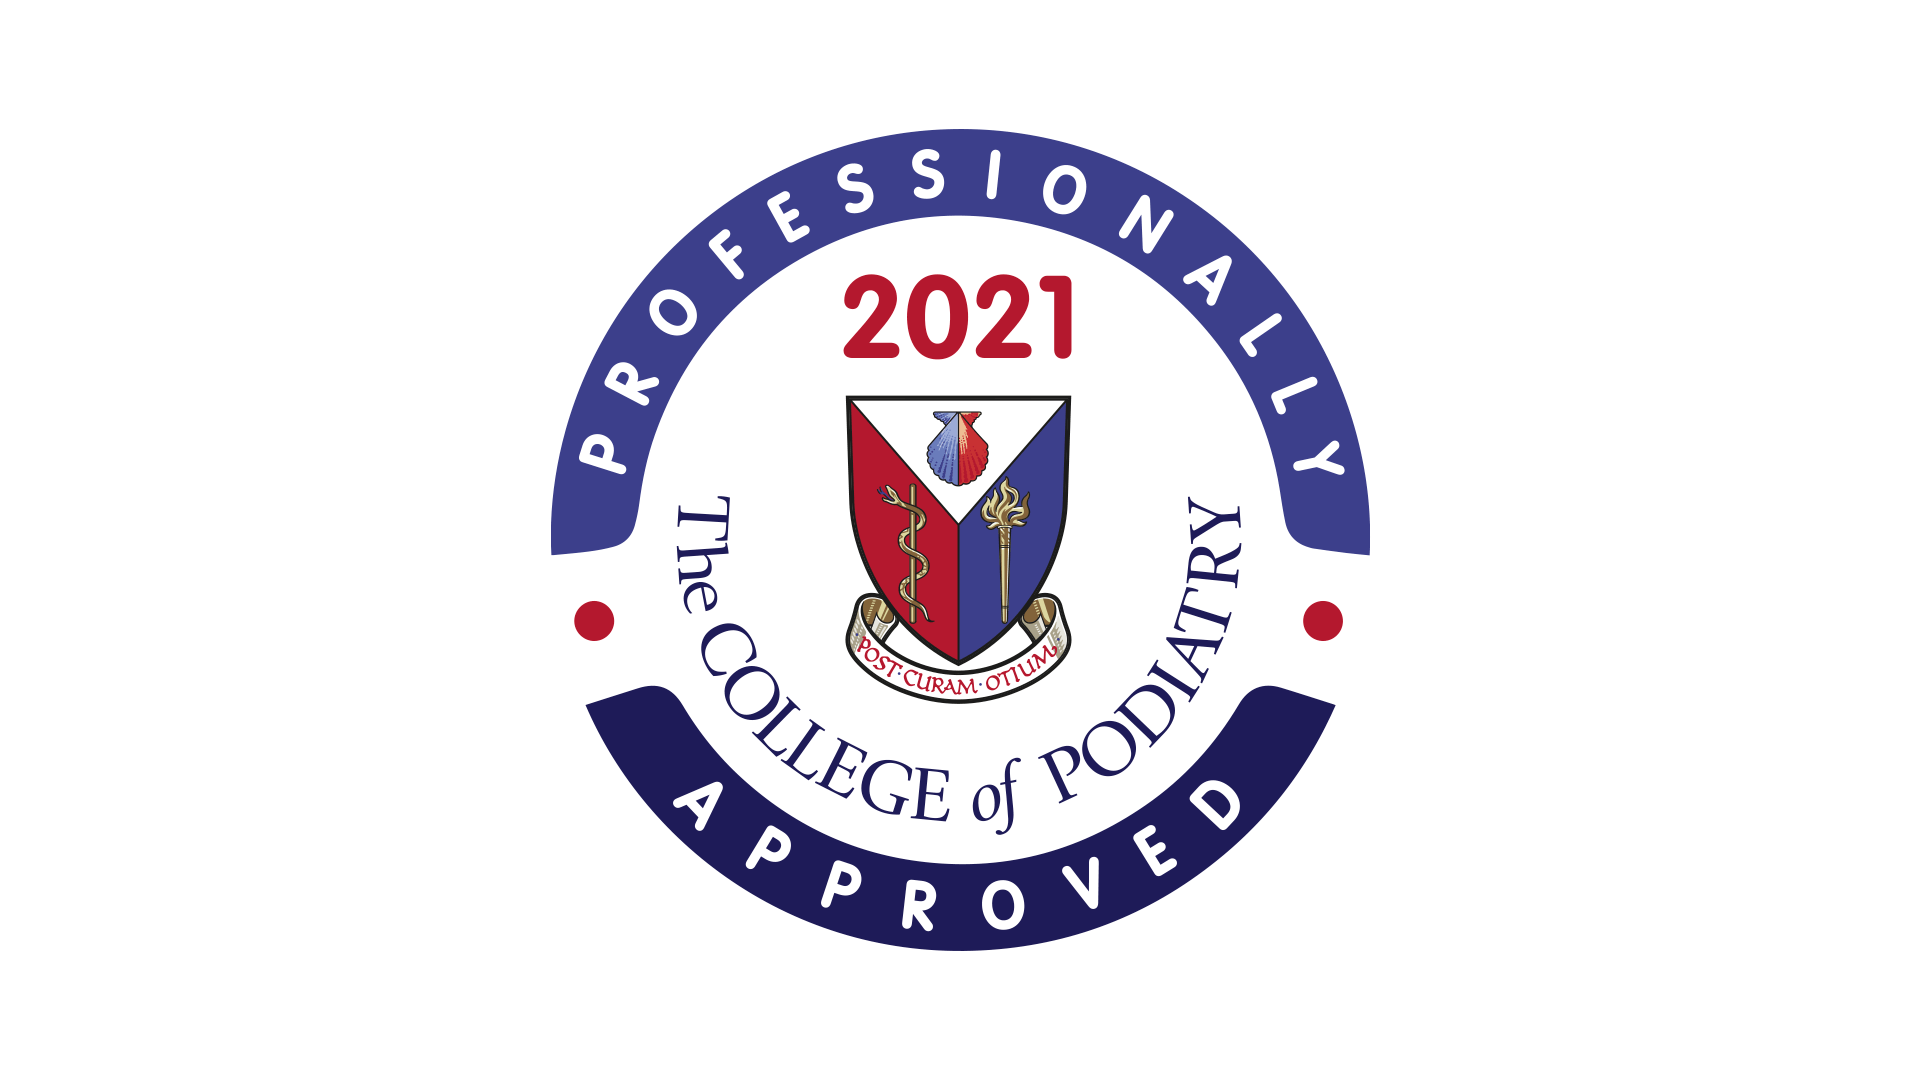 Logo: The College of Podiatry Professionally Approved 2021